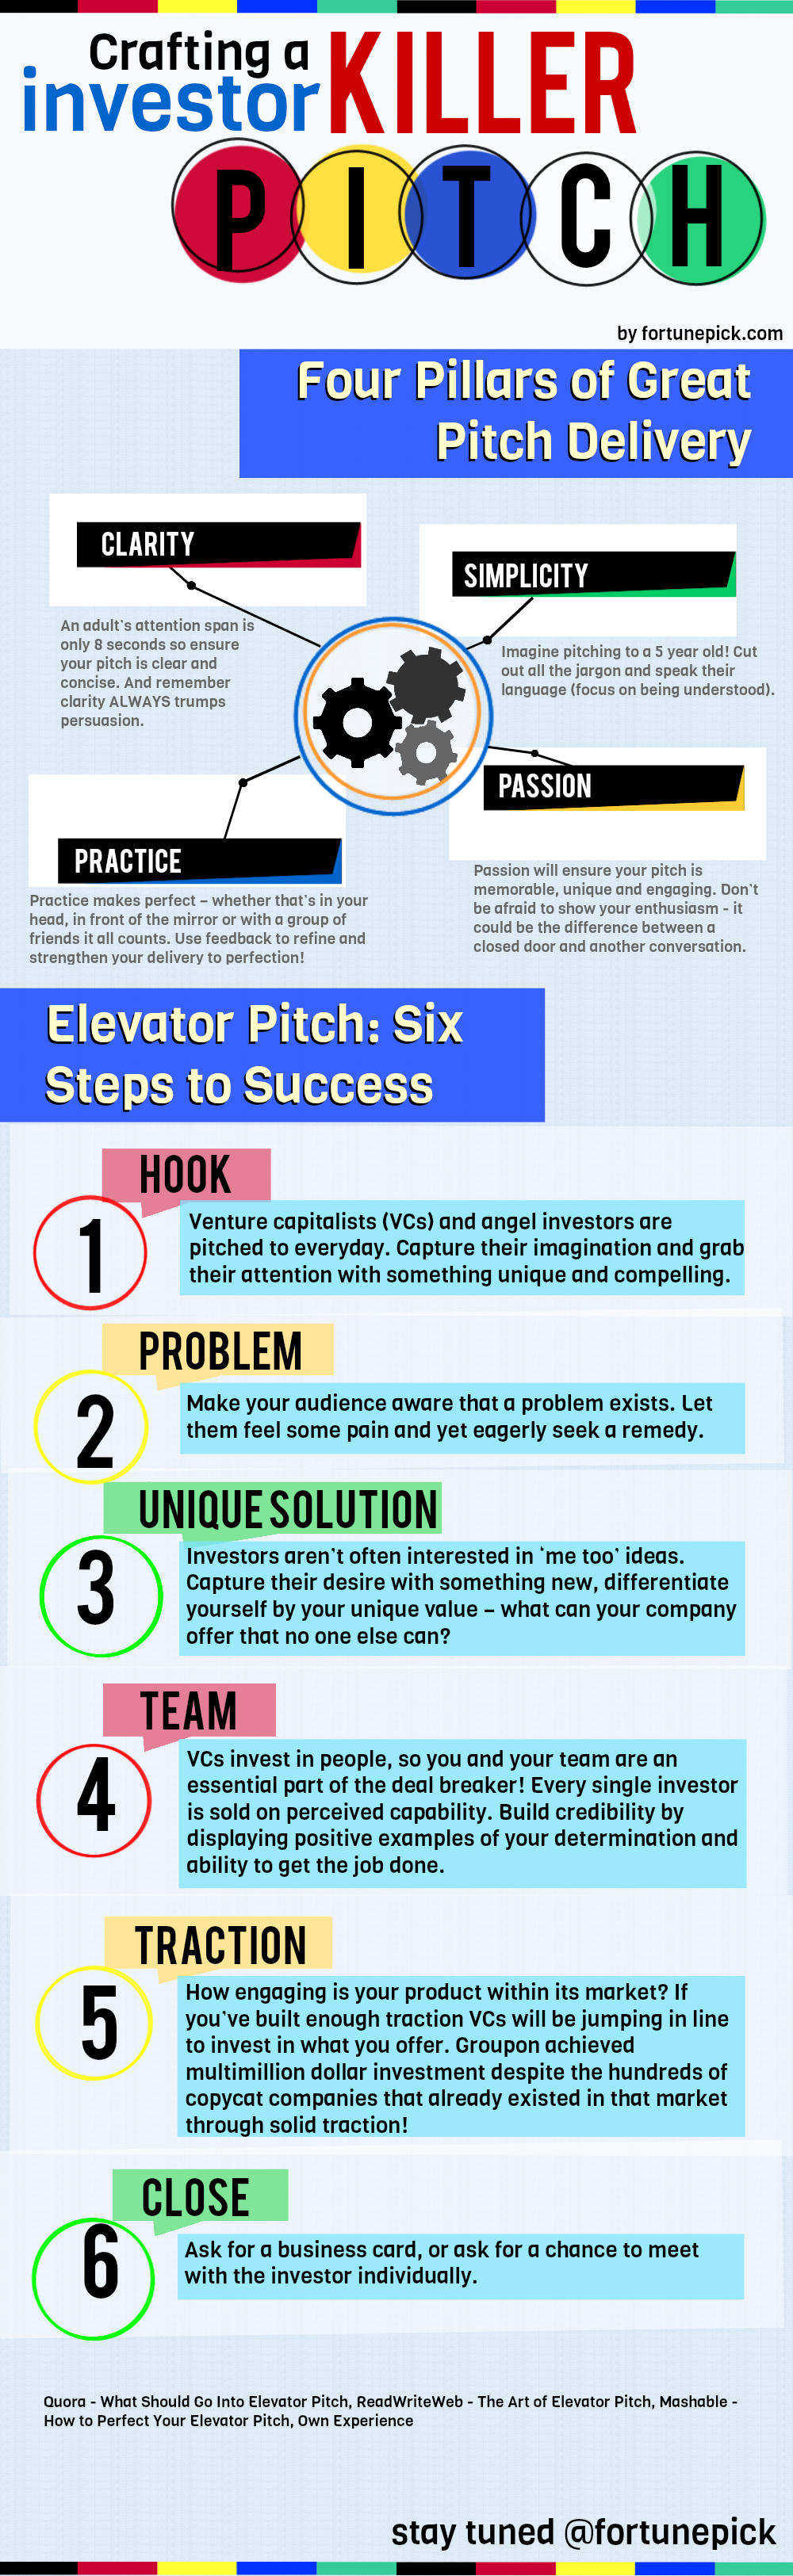 Reference: http://www.forbes.com/sites/ericaswallow/2012/06/27/elevator-pitch/